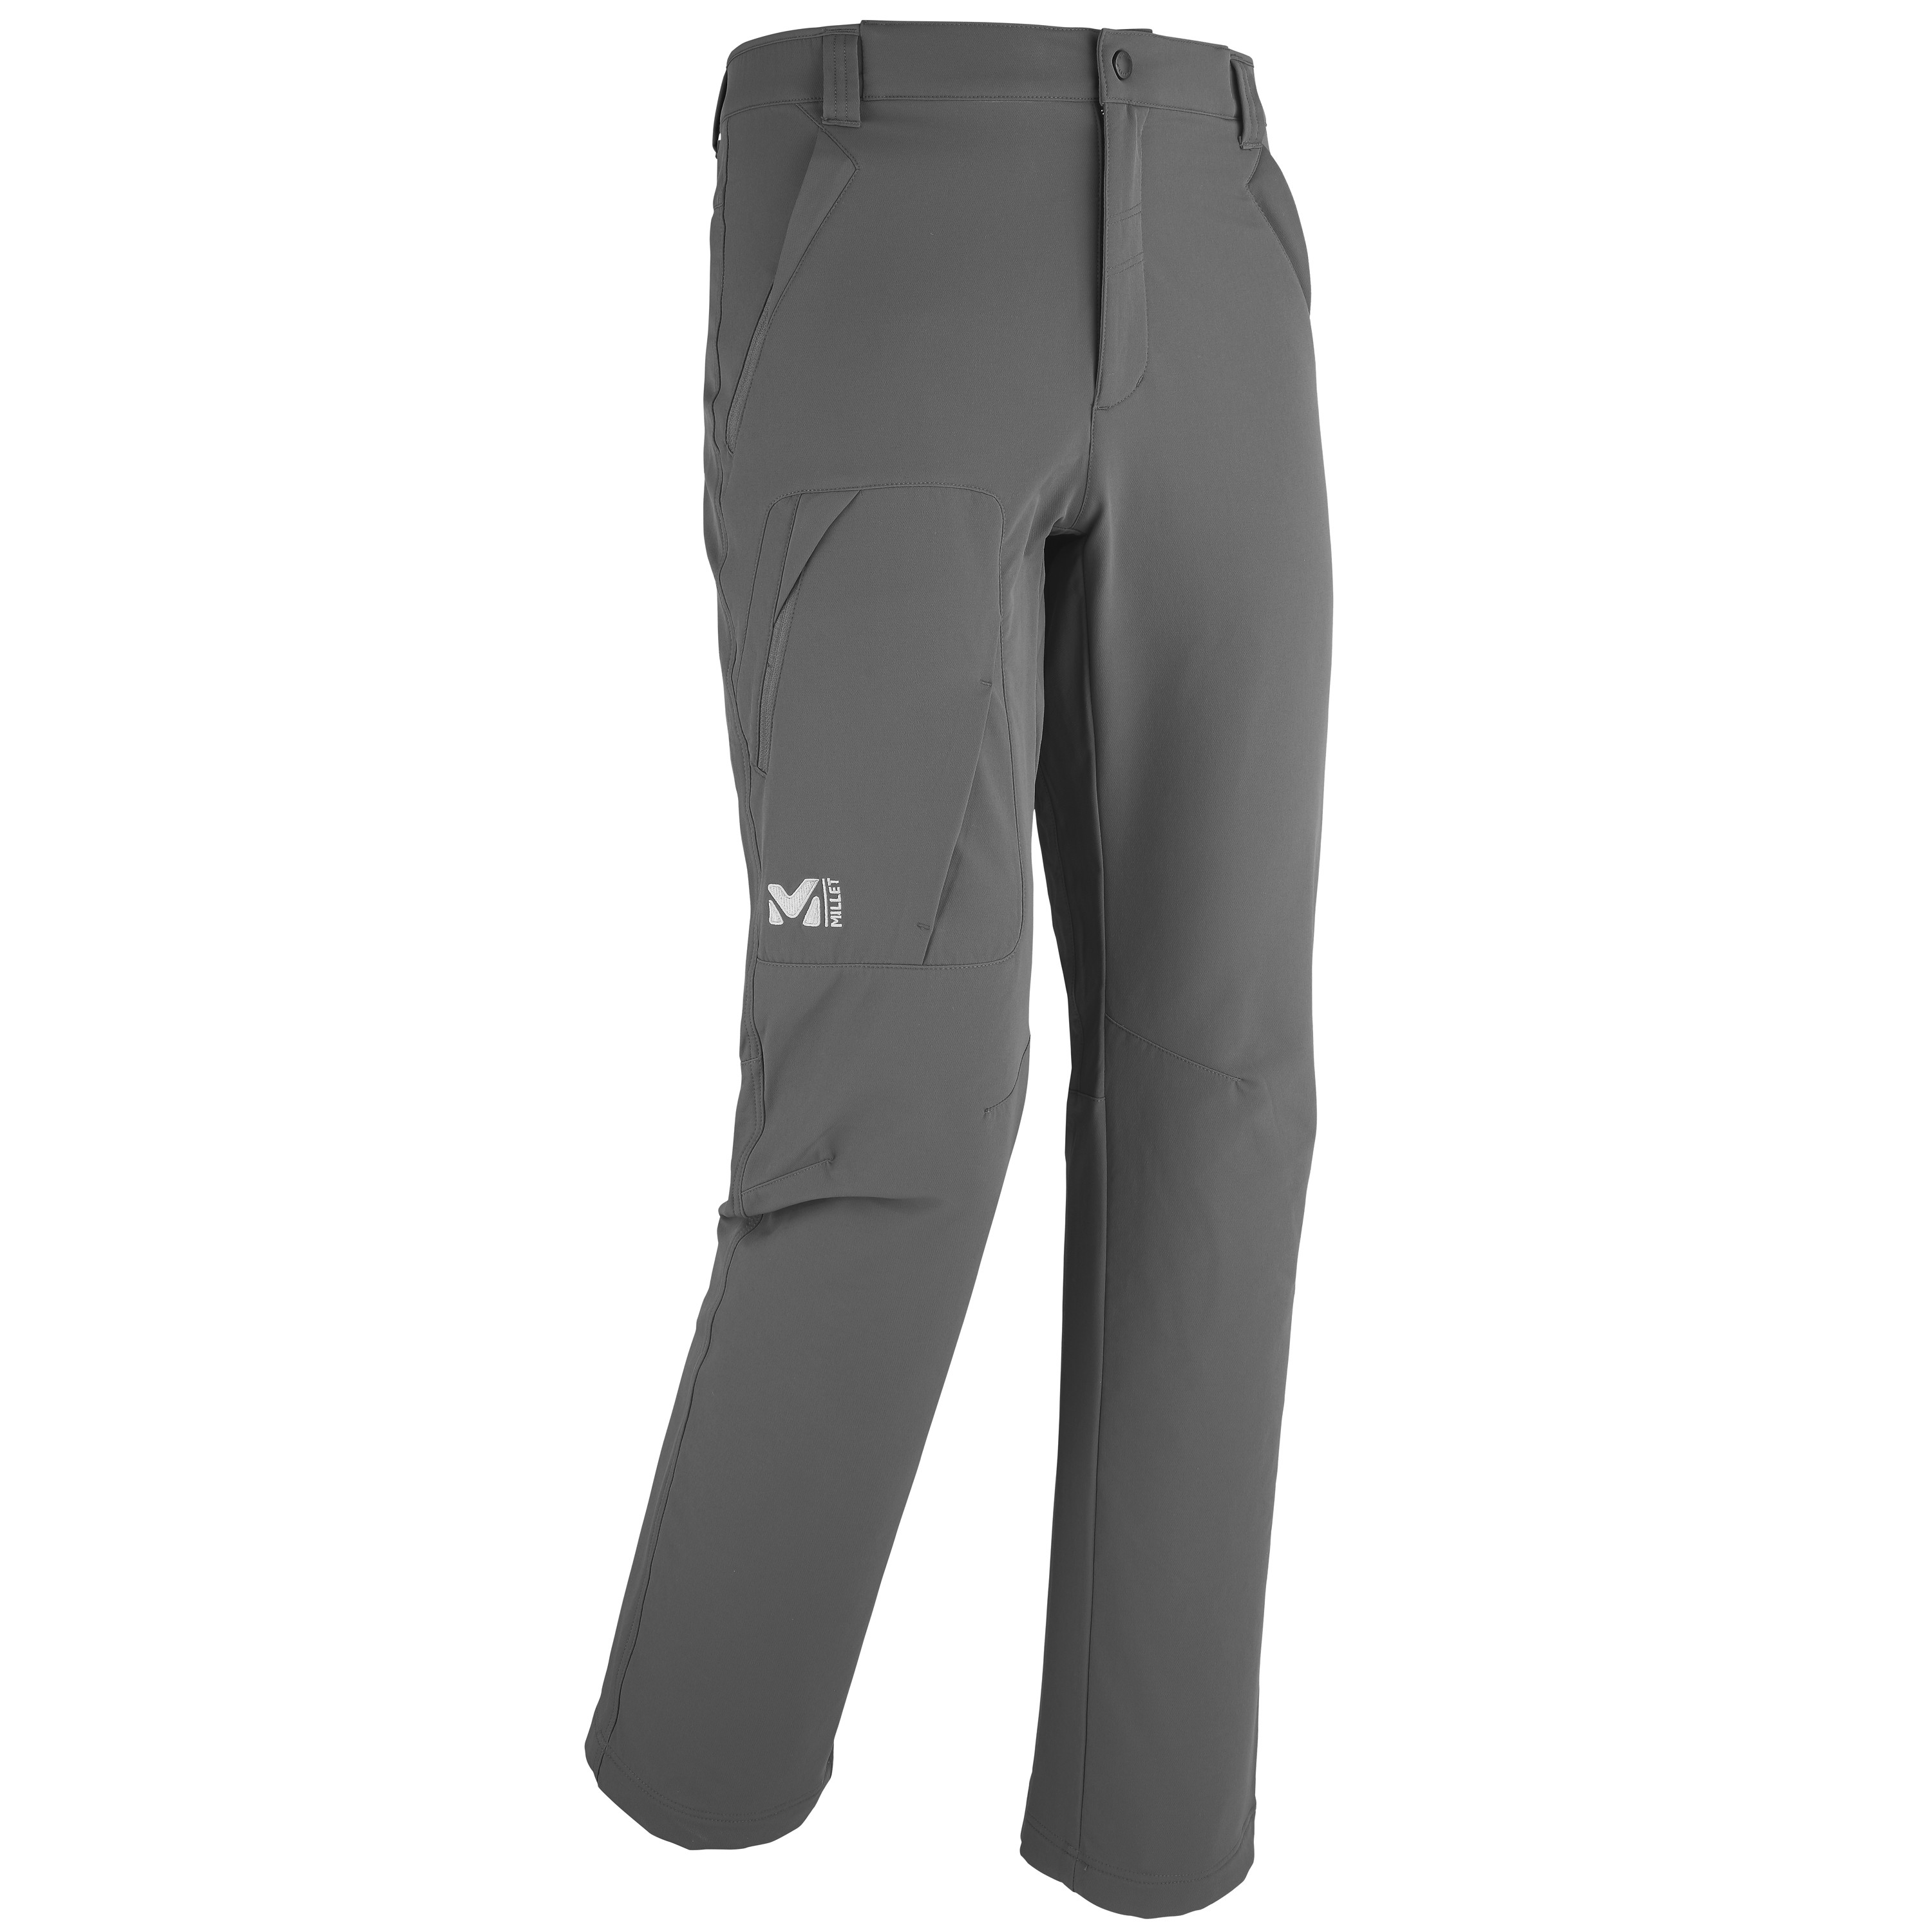 ALL OUTDOOR II RG PANT